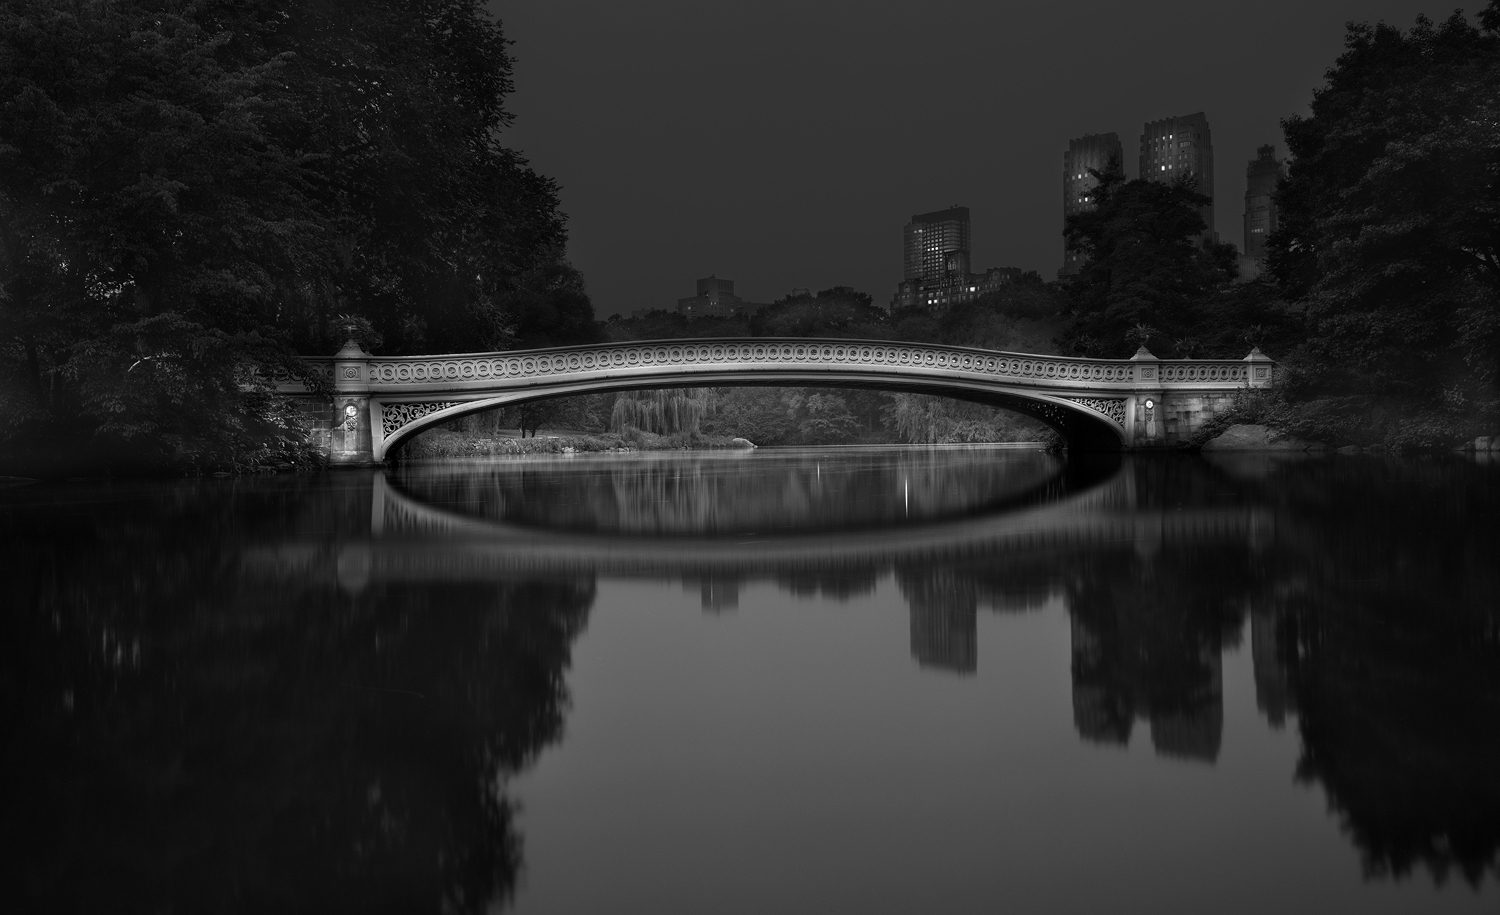 Deep In A Dream - Central Park - 5am Bow Bridge